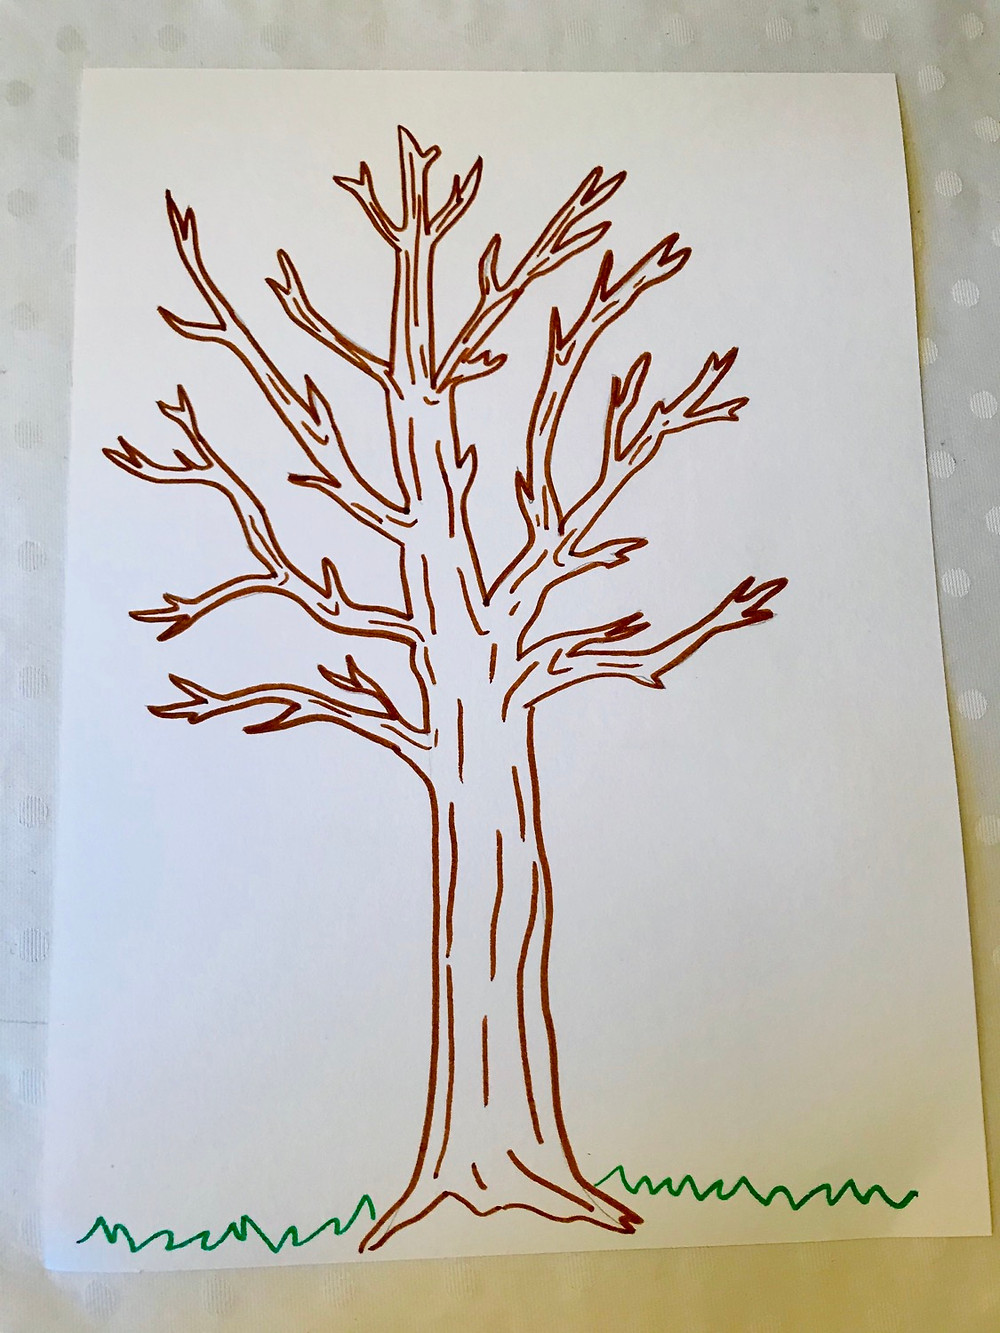 Drawing of a bare tree